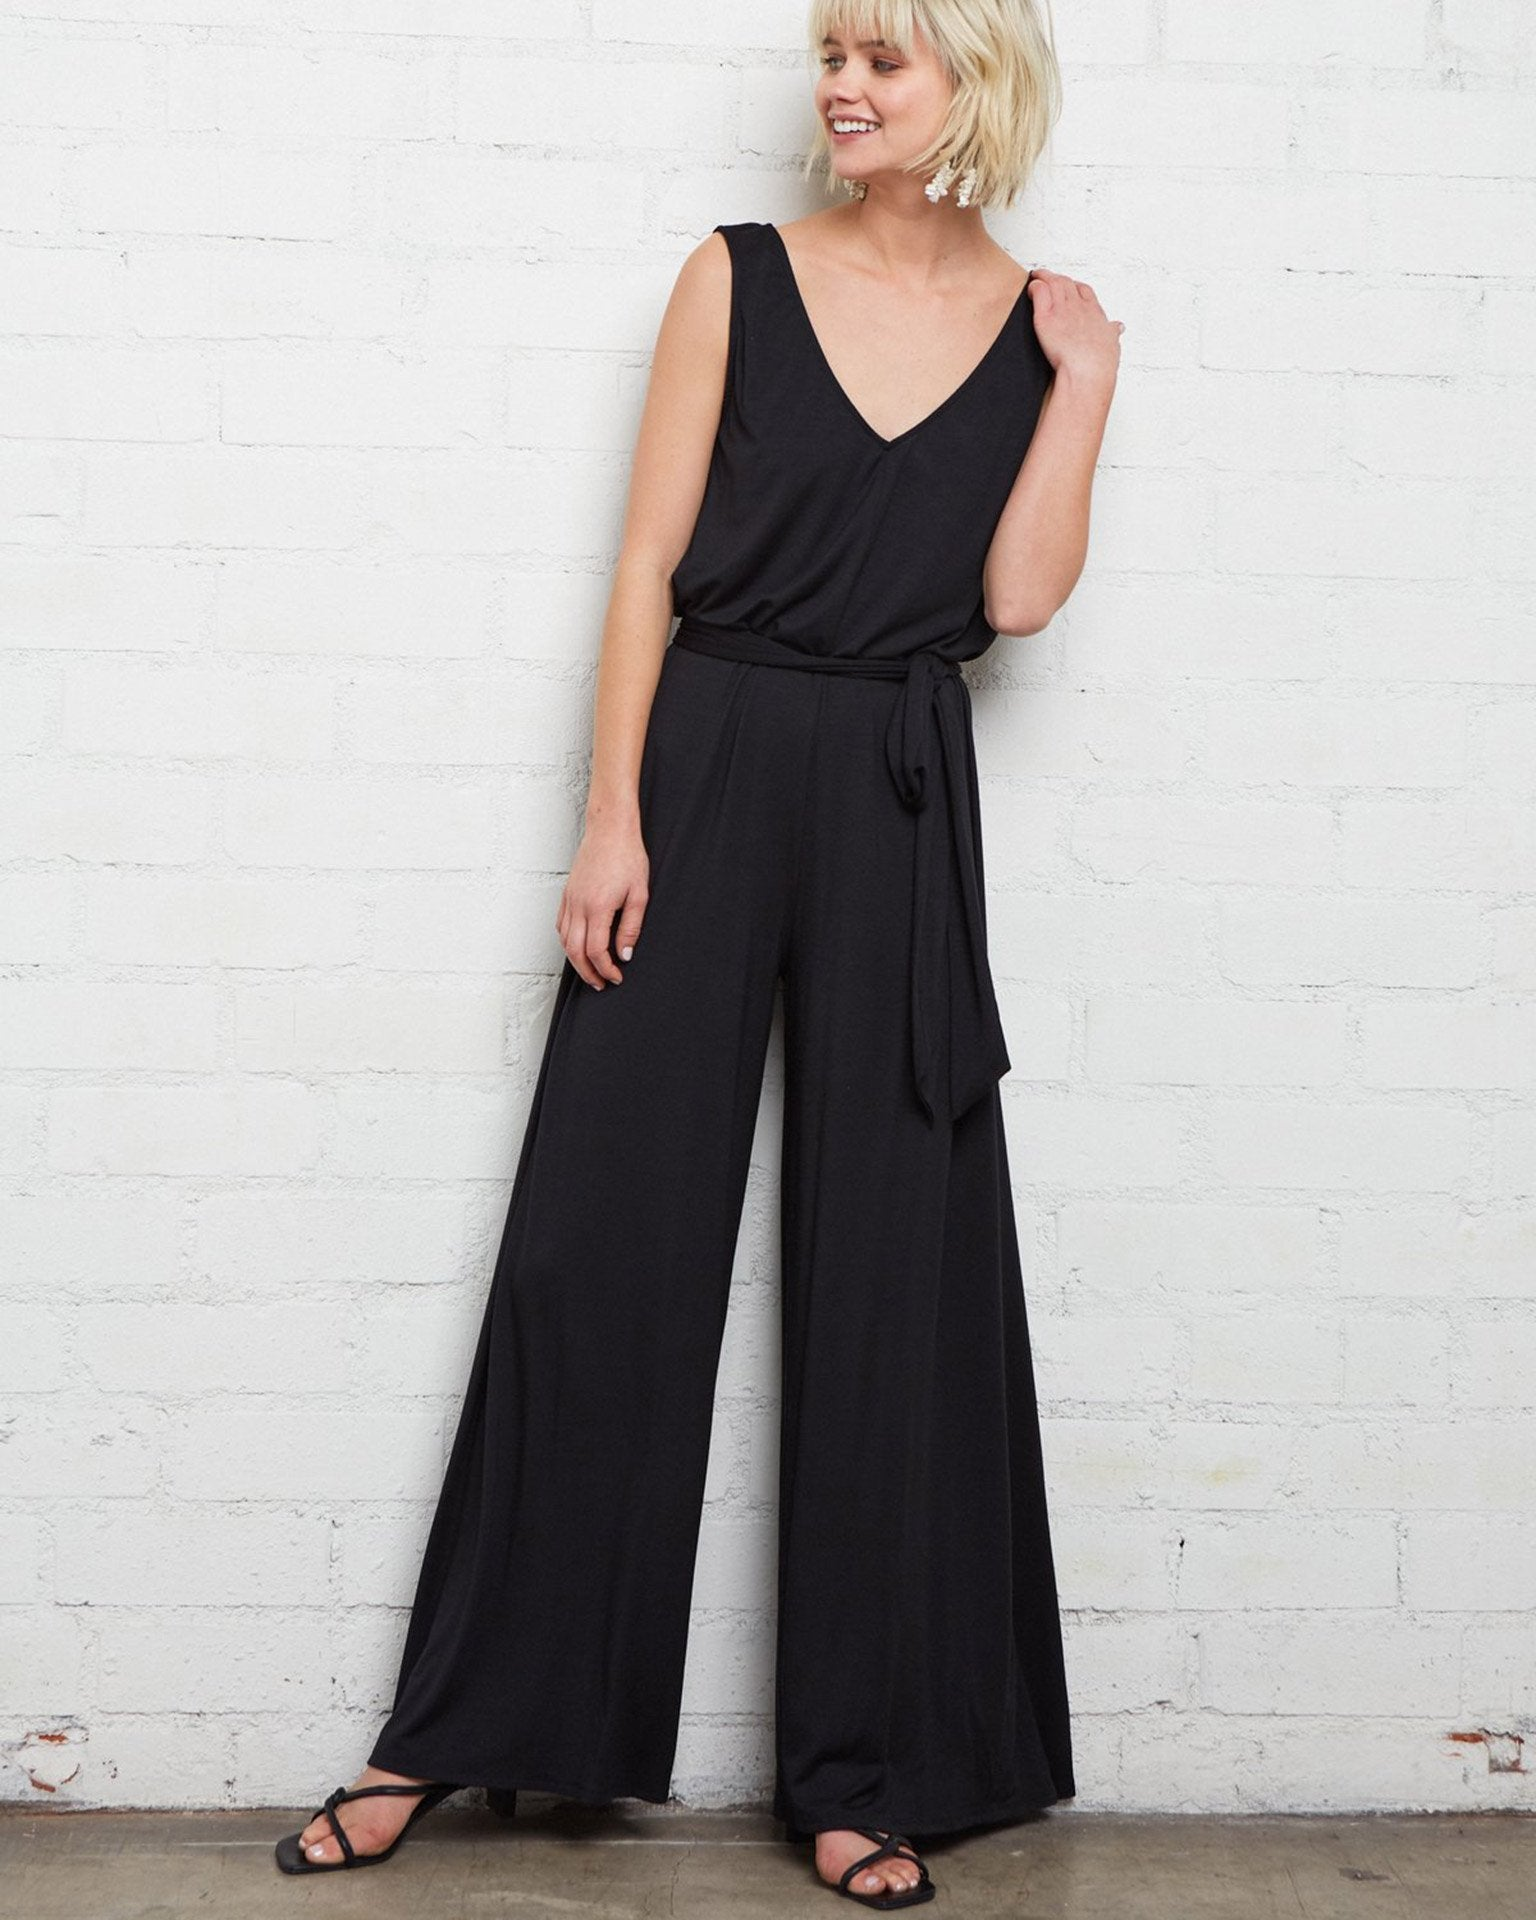 Rachel Pally Clothing Black / XS Jasmine Jumpsuit in Black